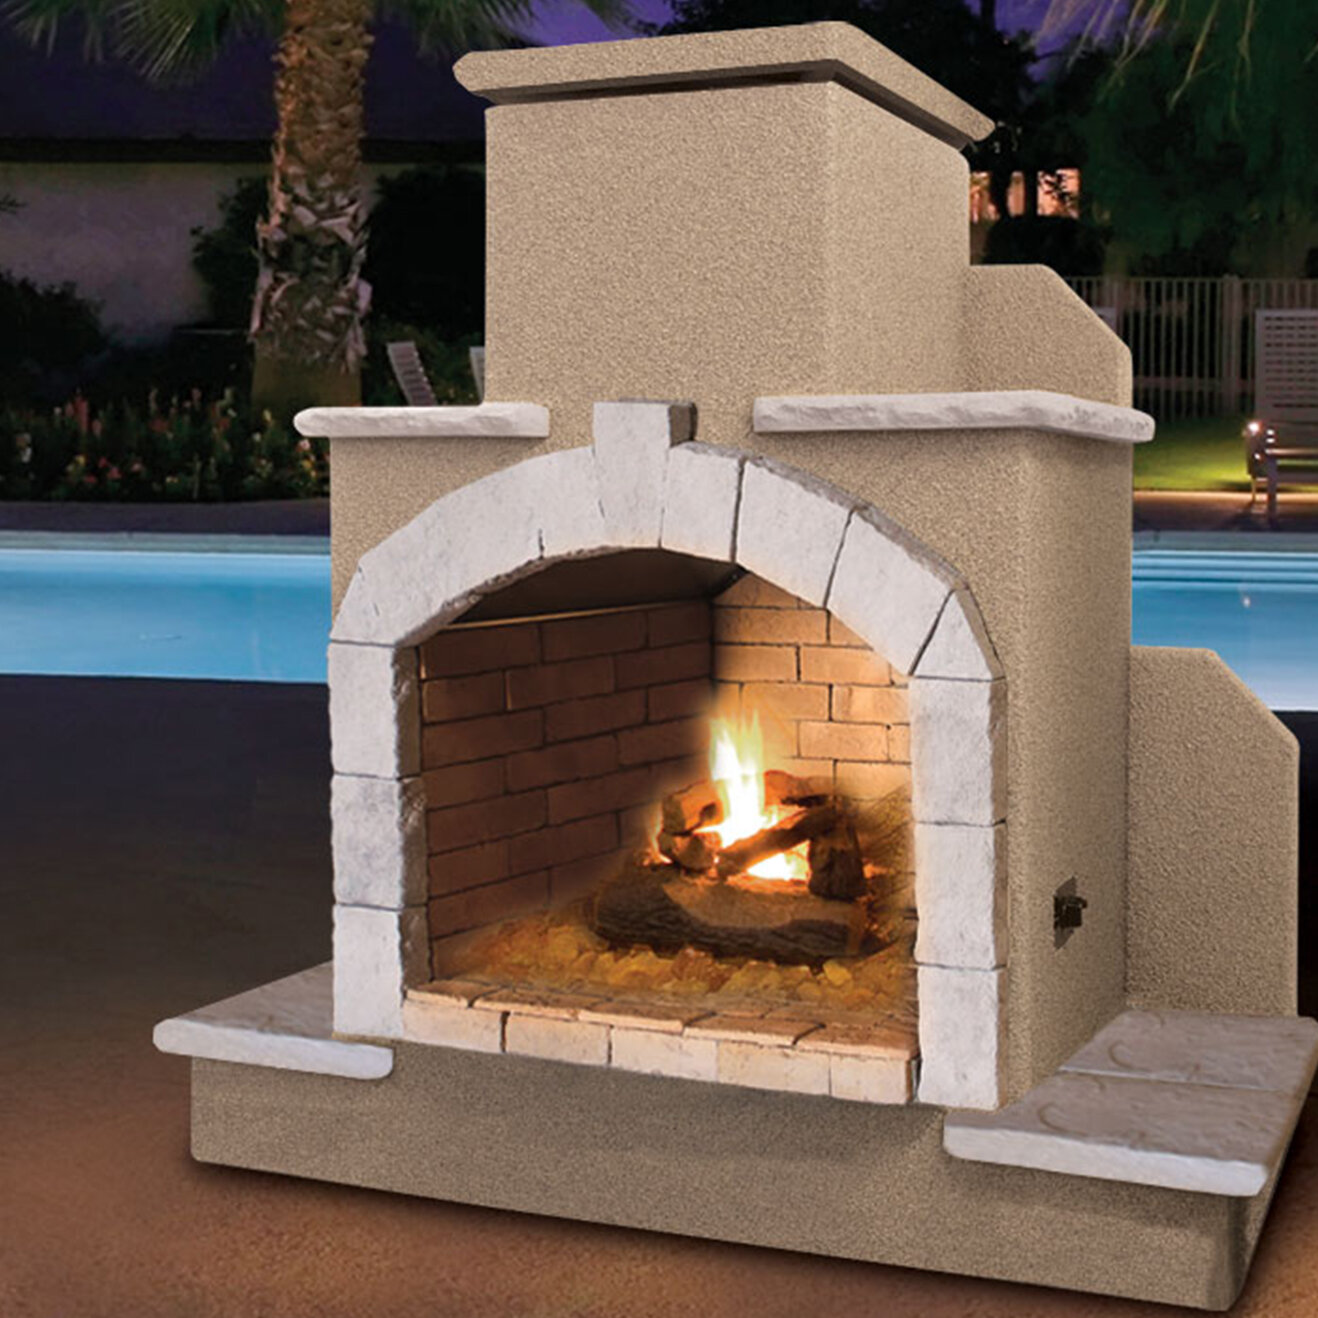 Cal Flame Steel Gas Outdoor Fireplace & Reviews | Wayfair on Quillen Steel Outdoor Fireplace id=99441